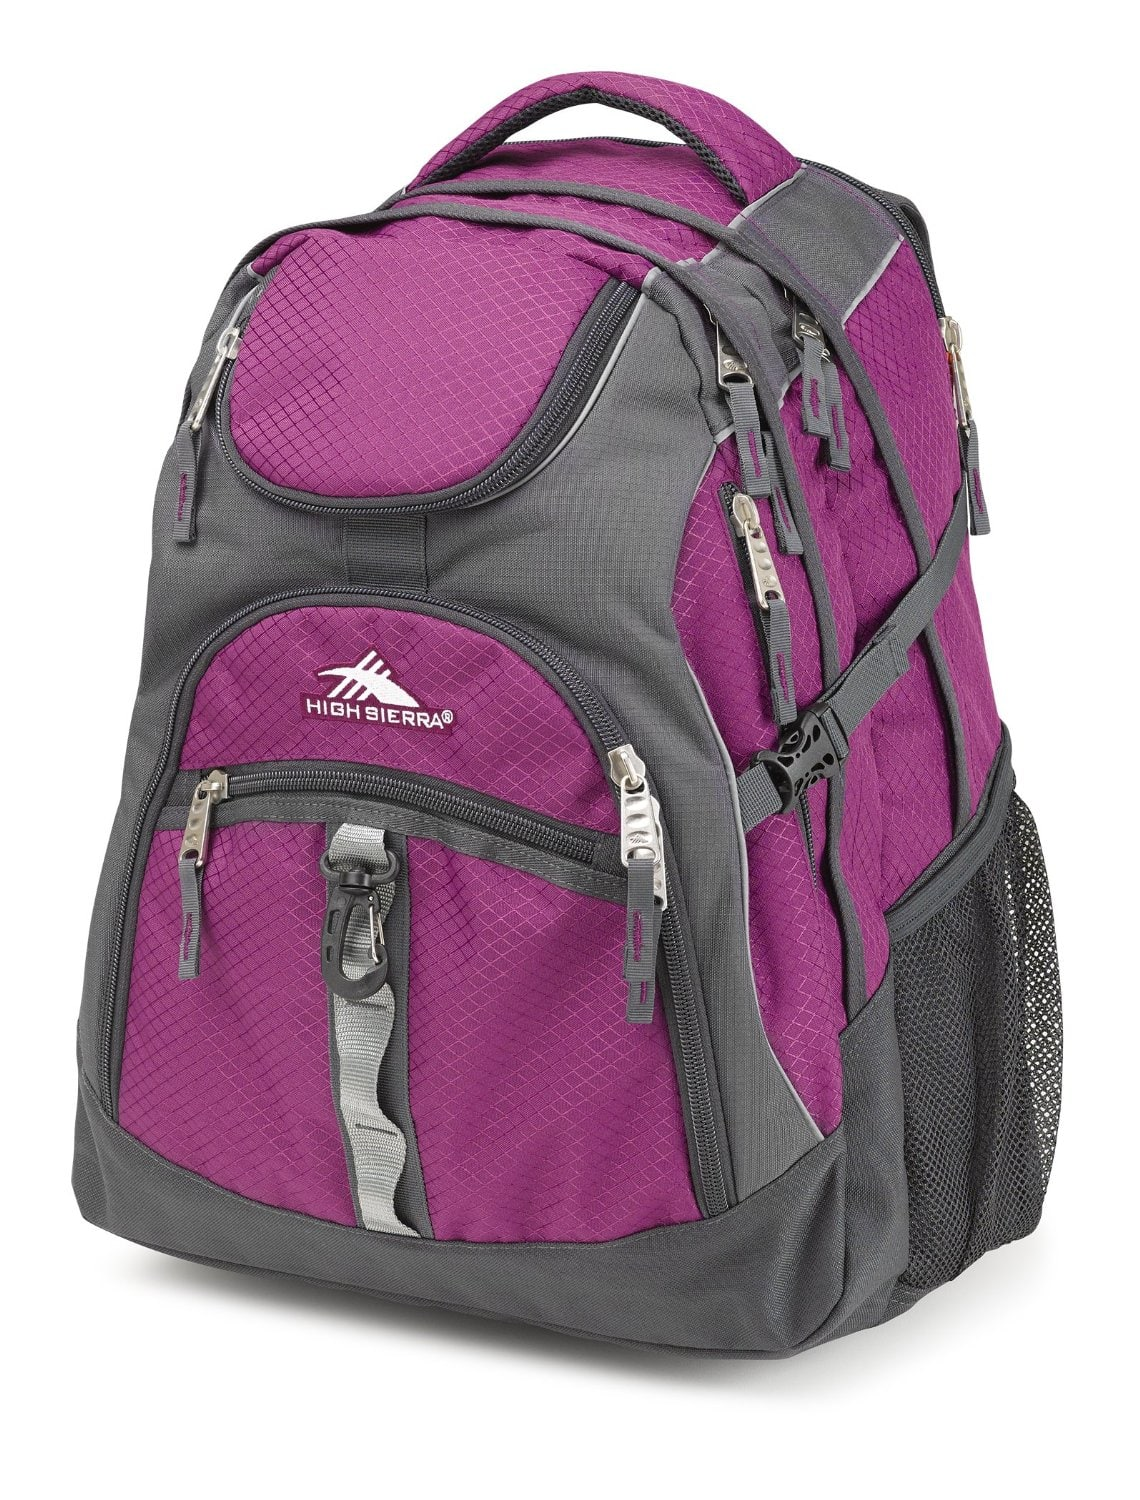 High Sierra Access Backpack (various colors)  $30 + Free Shipping